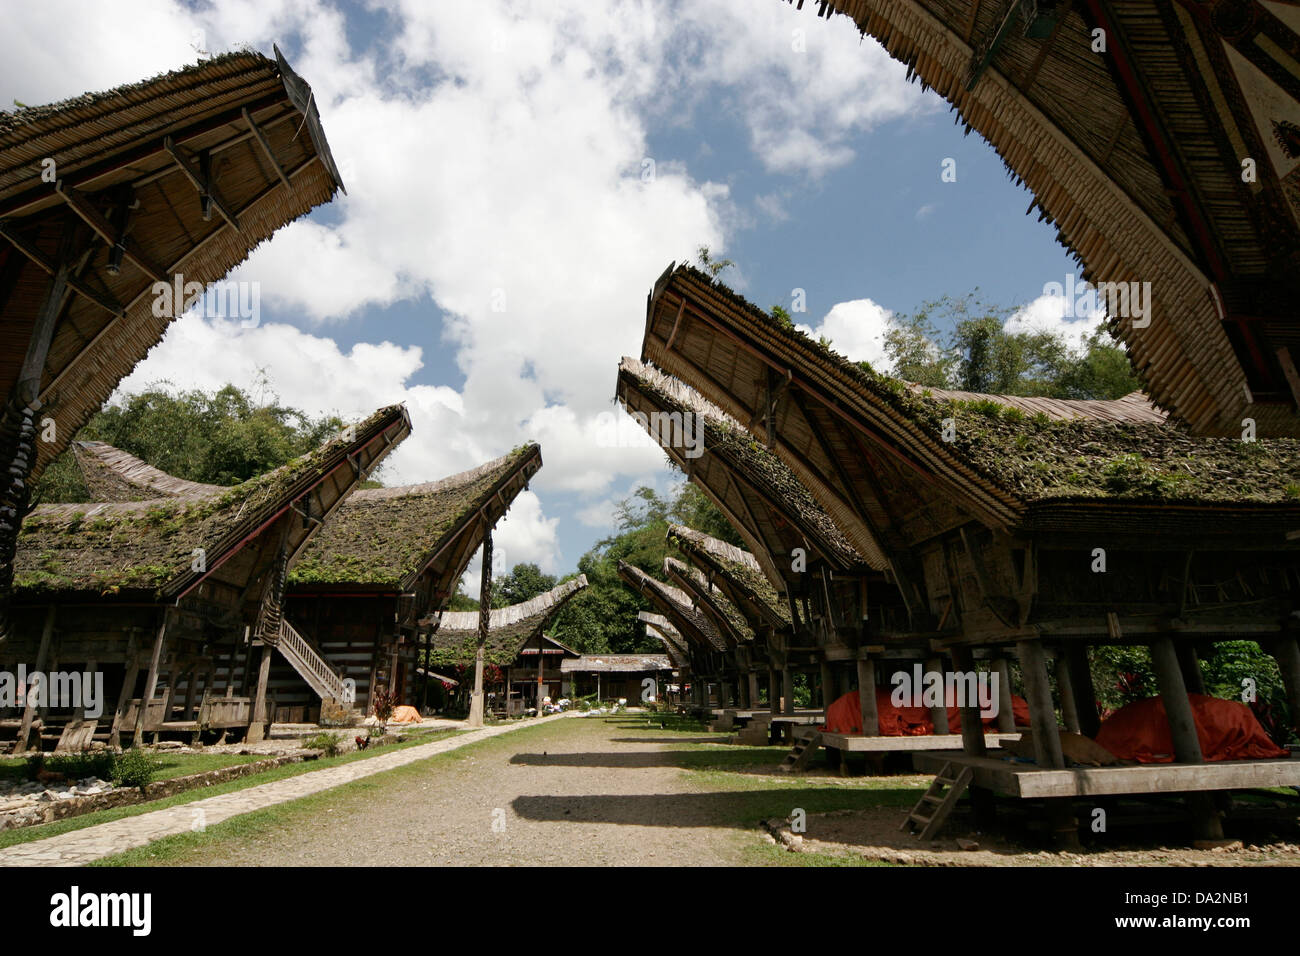 Traditional Torajan houses (tongkonan) in Kete Kesu vilage, Tona Toraja, Sulawesi, Indonesia - Stock Image